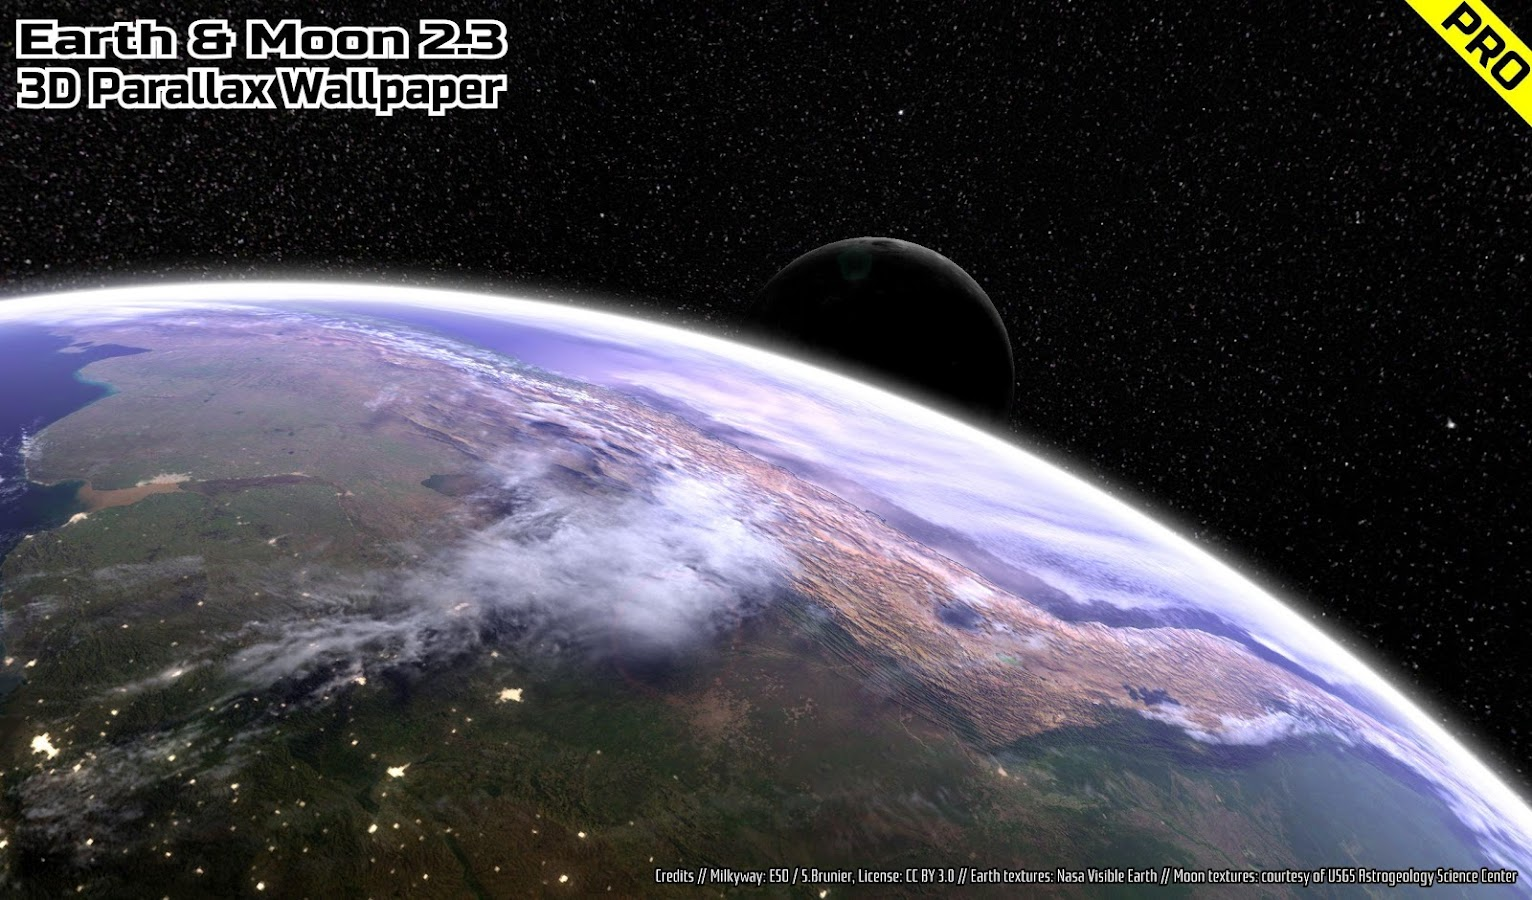 Animals Wallpaper 3d Hd 2 0 Apk Download: Earth & Moon In HD Gyro 3D PRO Parallax Wallpaper 2.4 APK